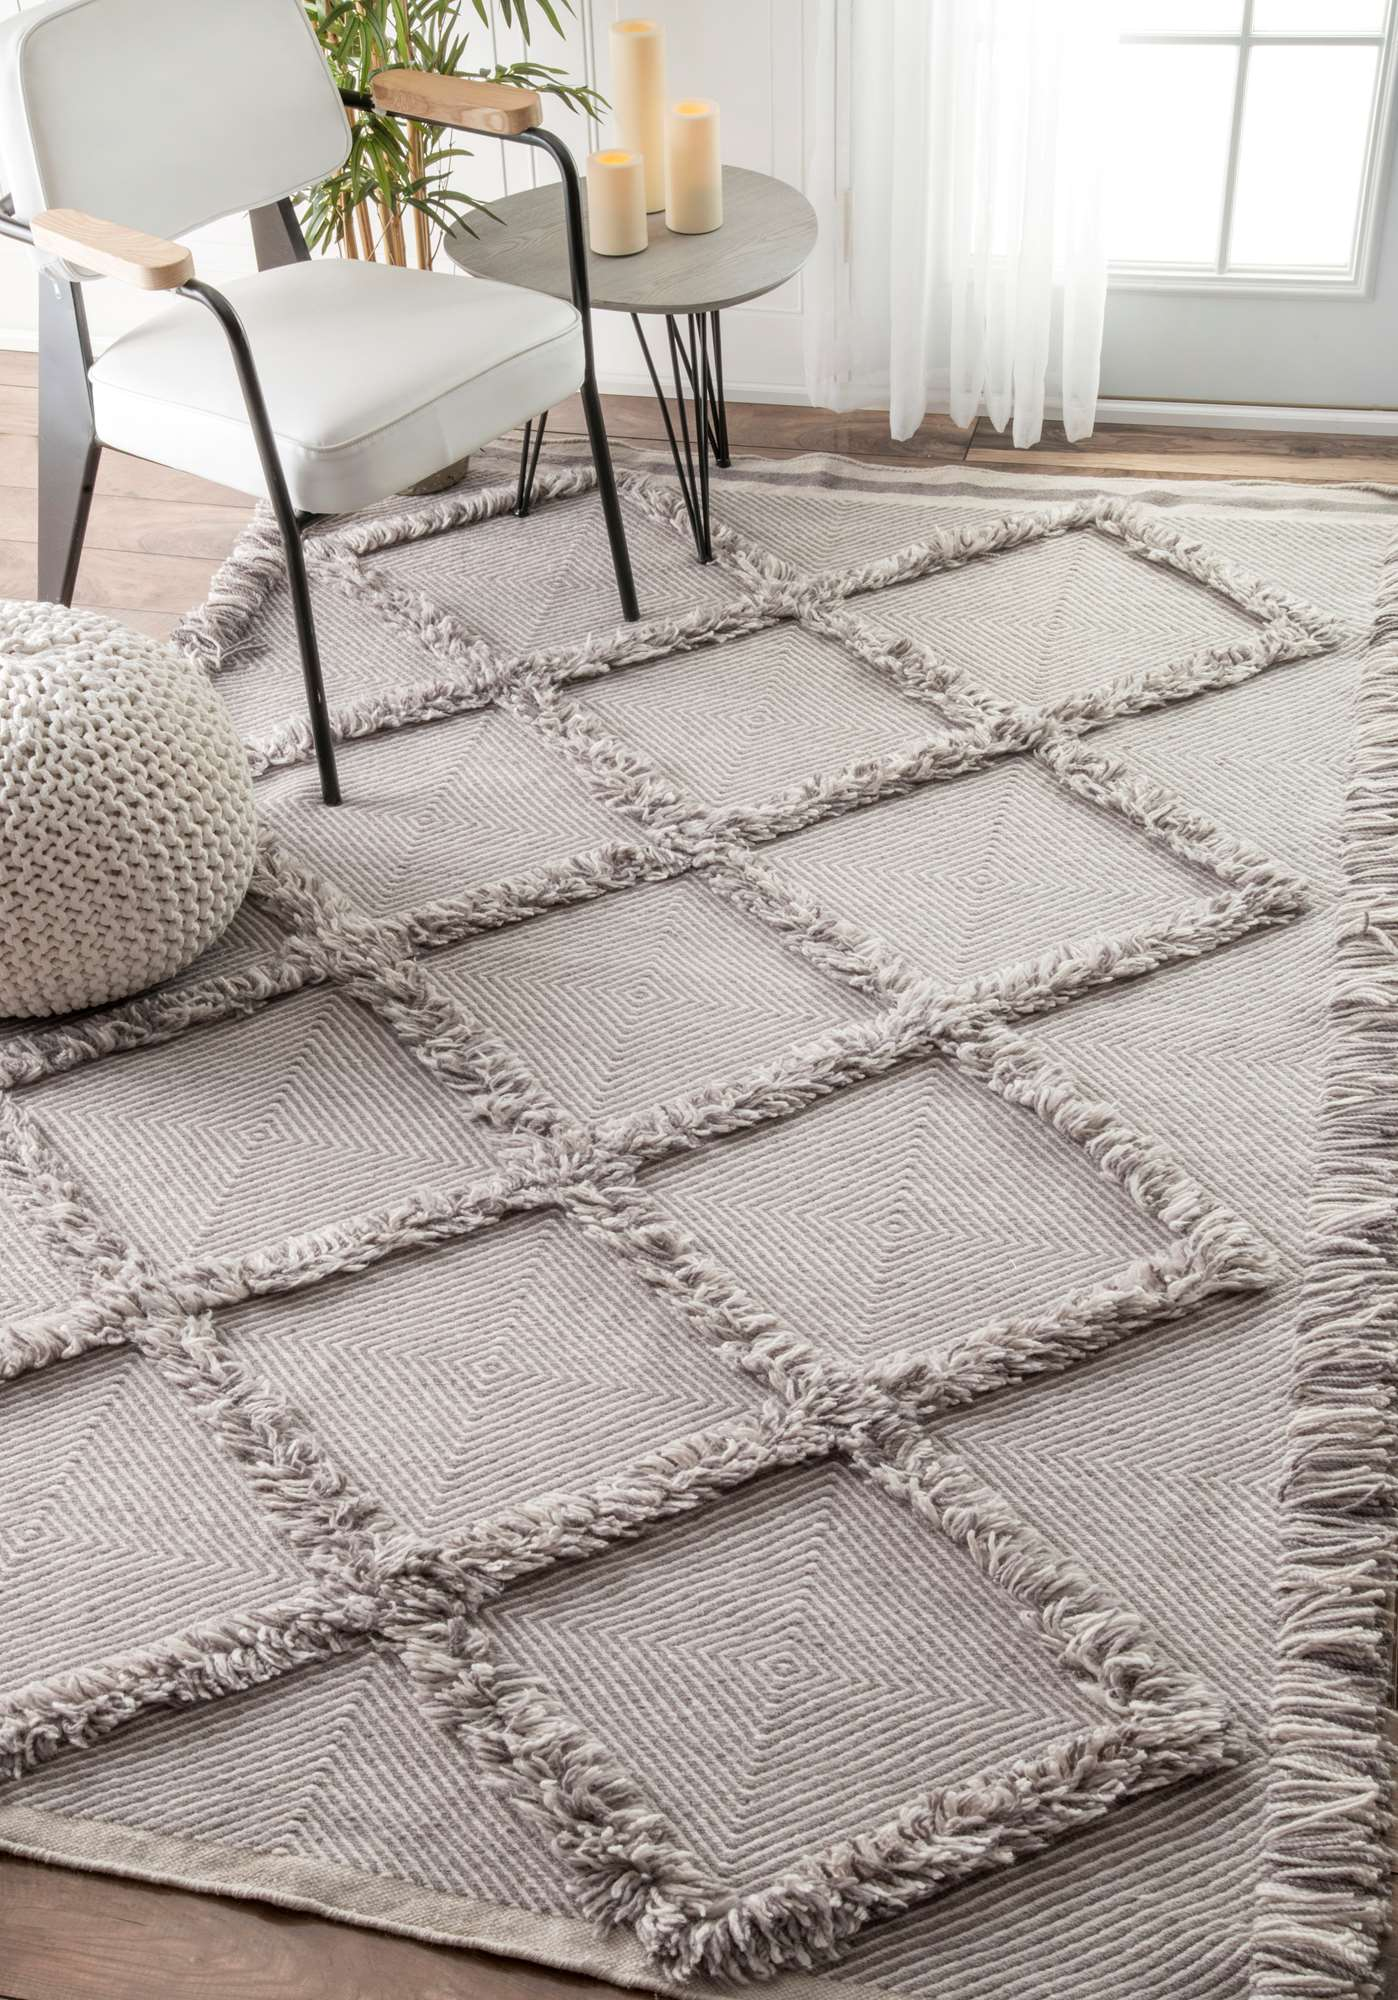 Adorable Nuloom Shag Rug | Wondrous Marrakesh Shag Rug